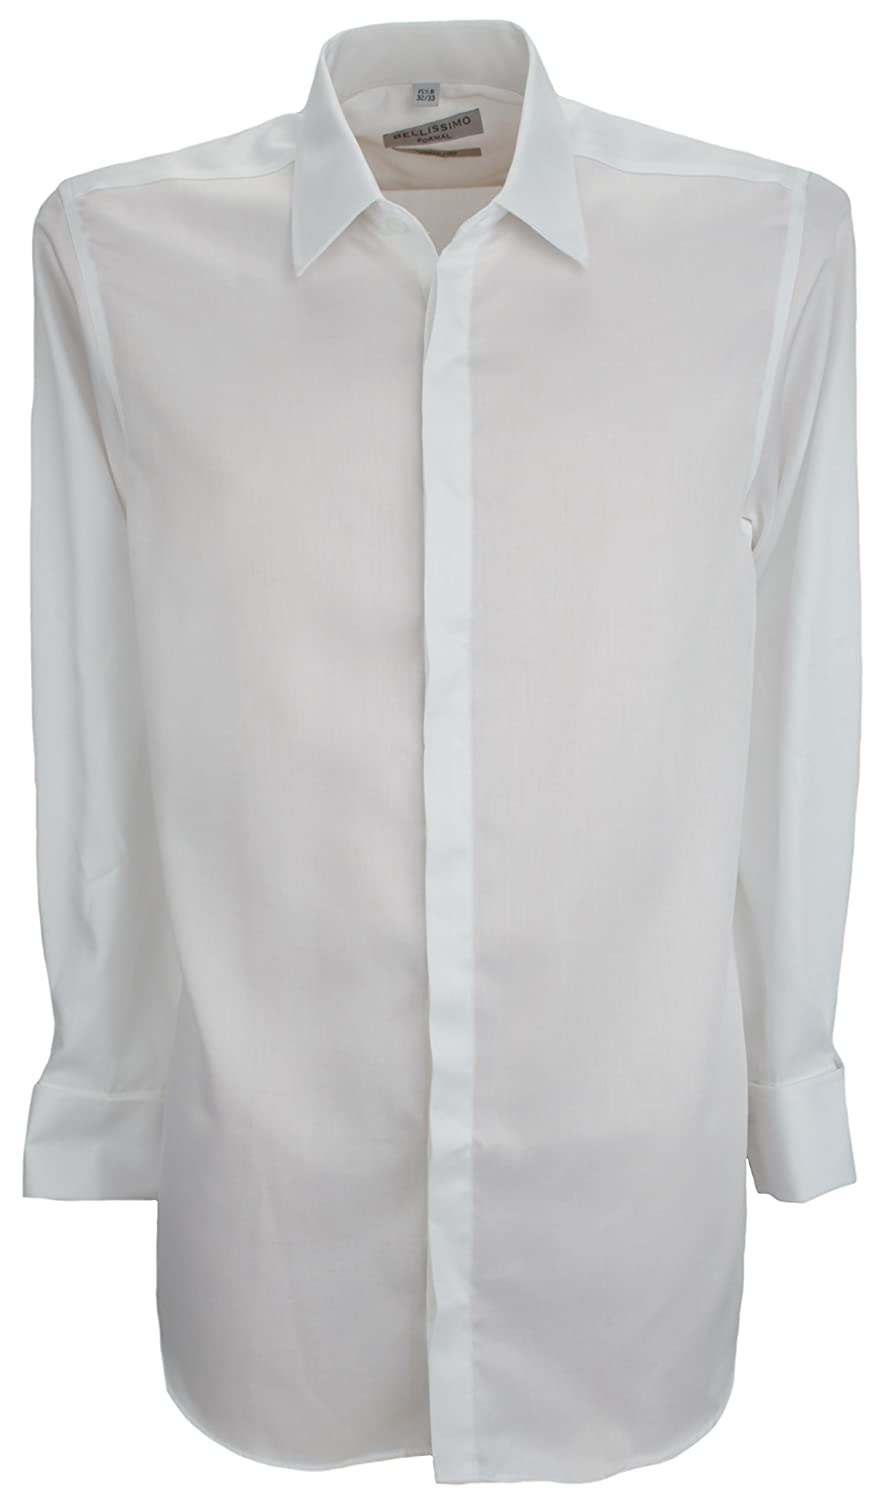 TALLA 38 Regular. Bellissimo - Camisa formal - Clásico - Manga Larga - para hombre